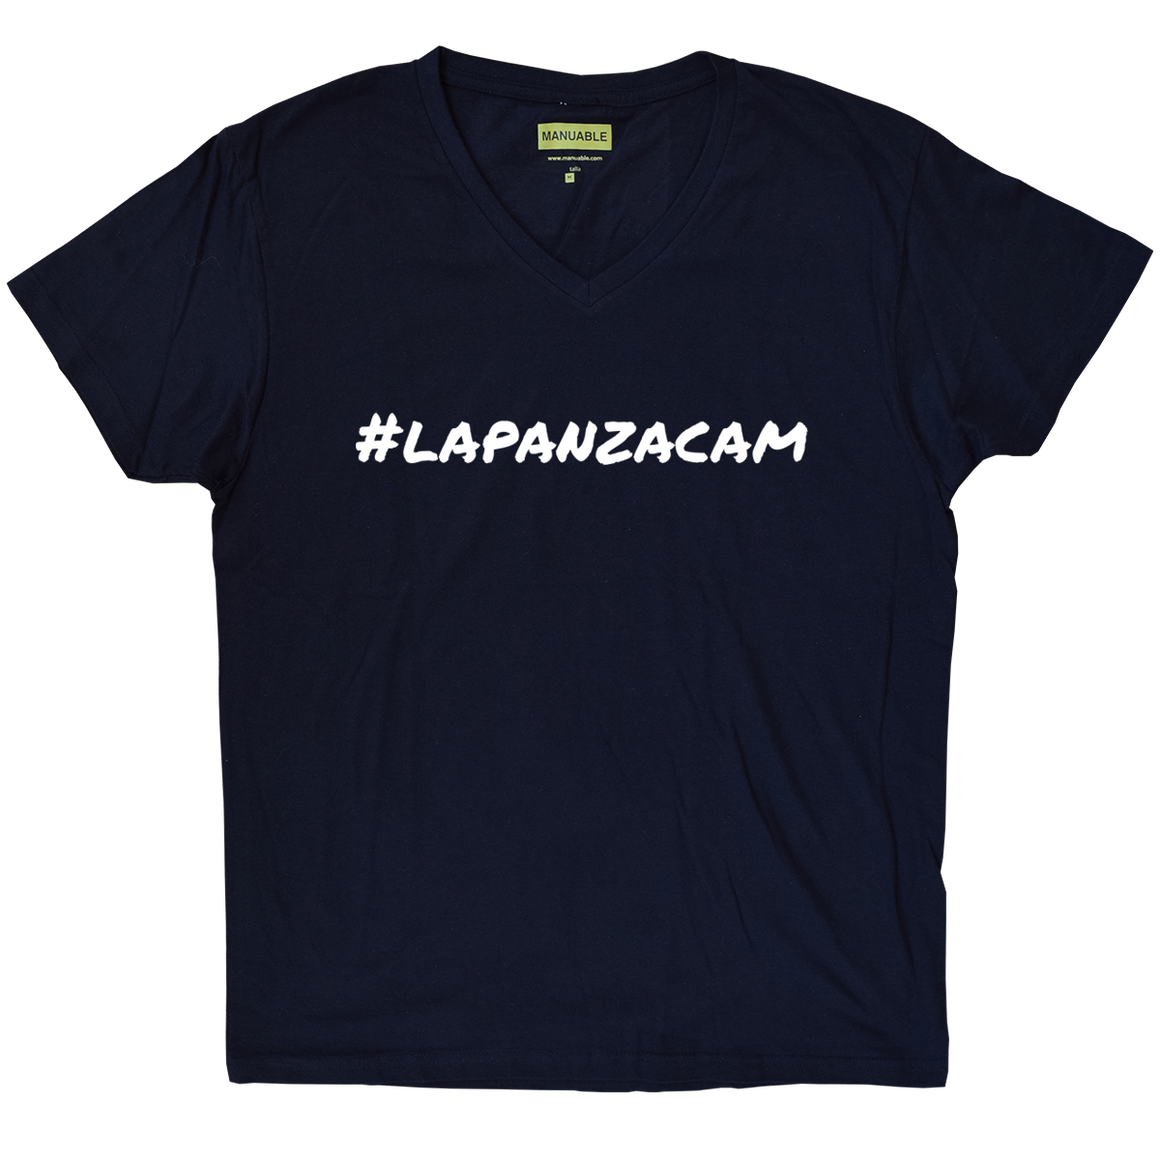 Playera #lapanzacam - Guy